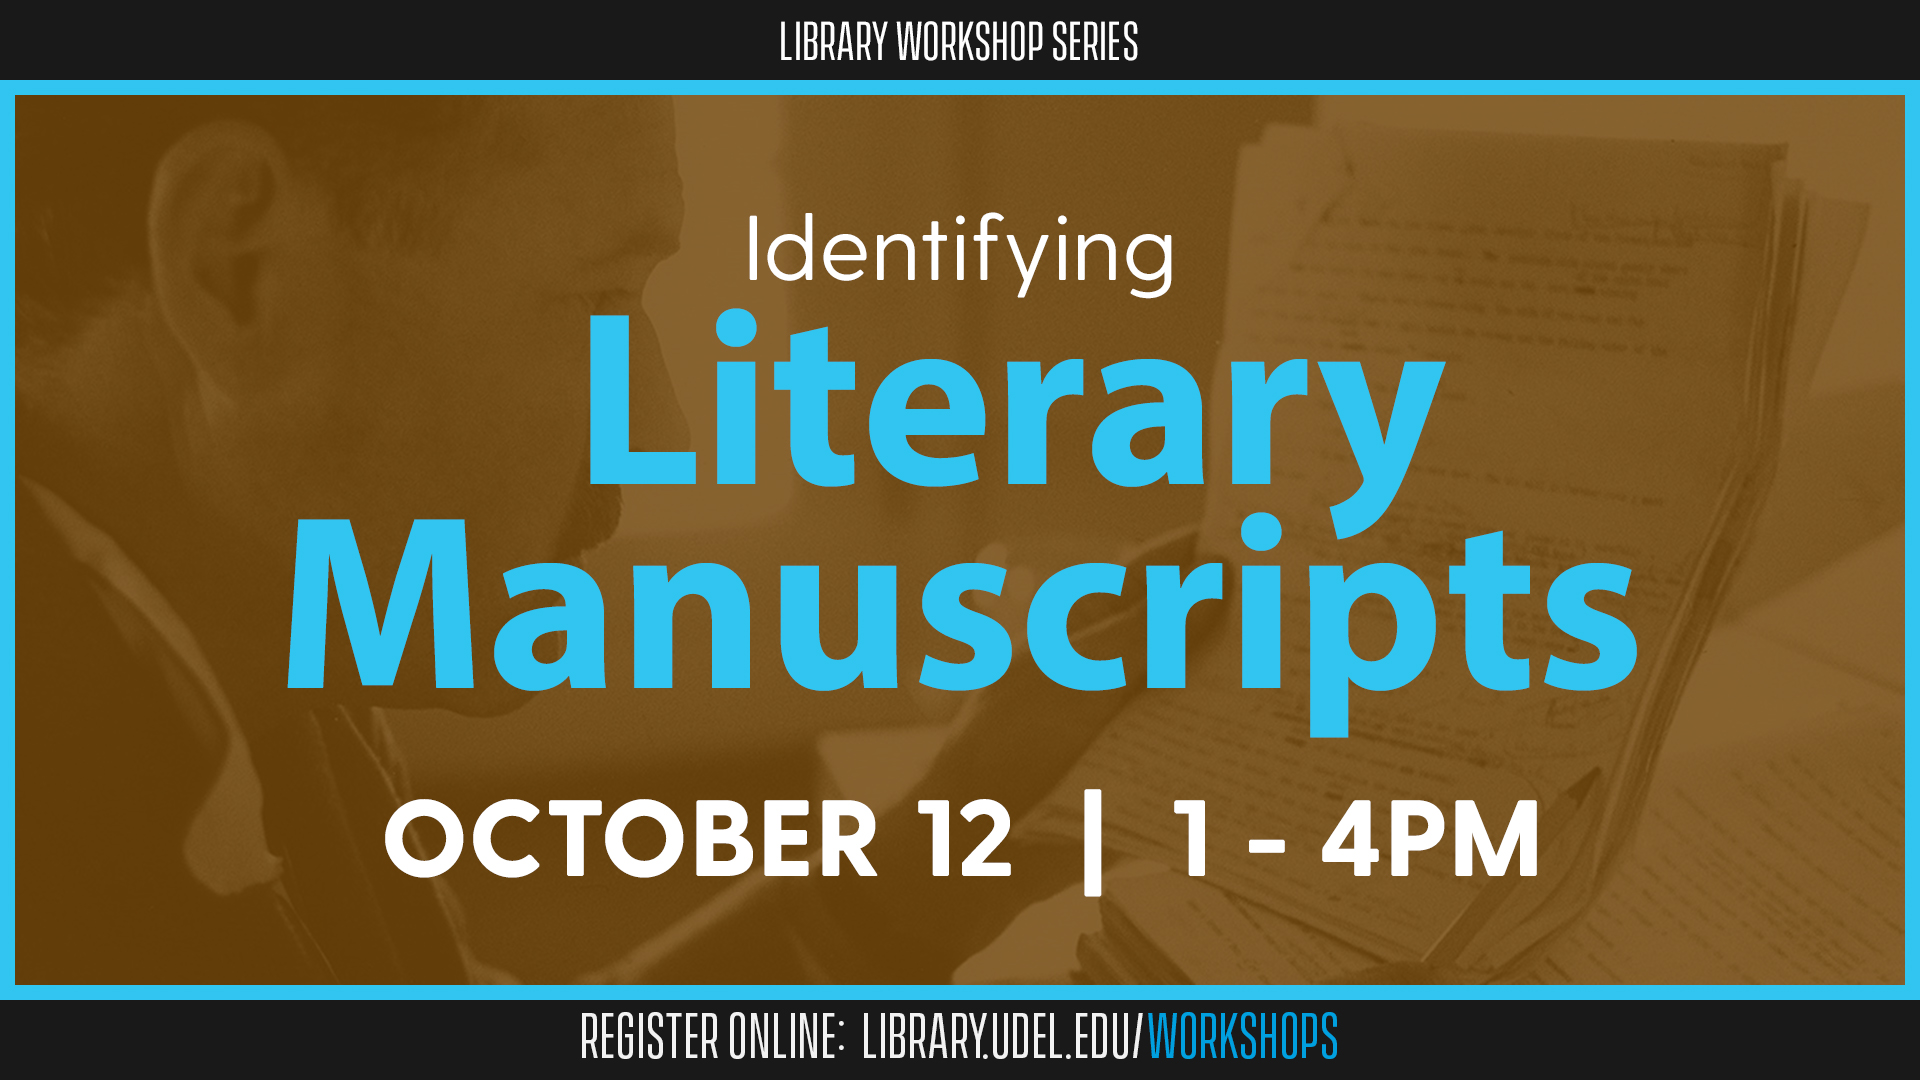 Archives Month Workshop: Identifying Literary Manuscripts